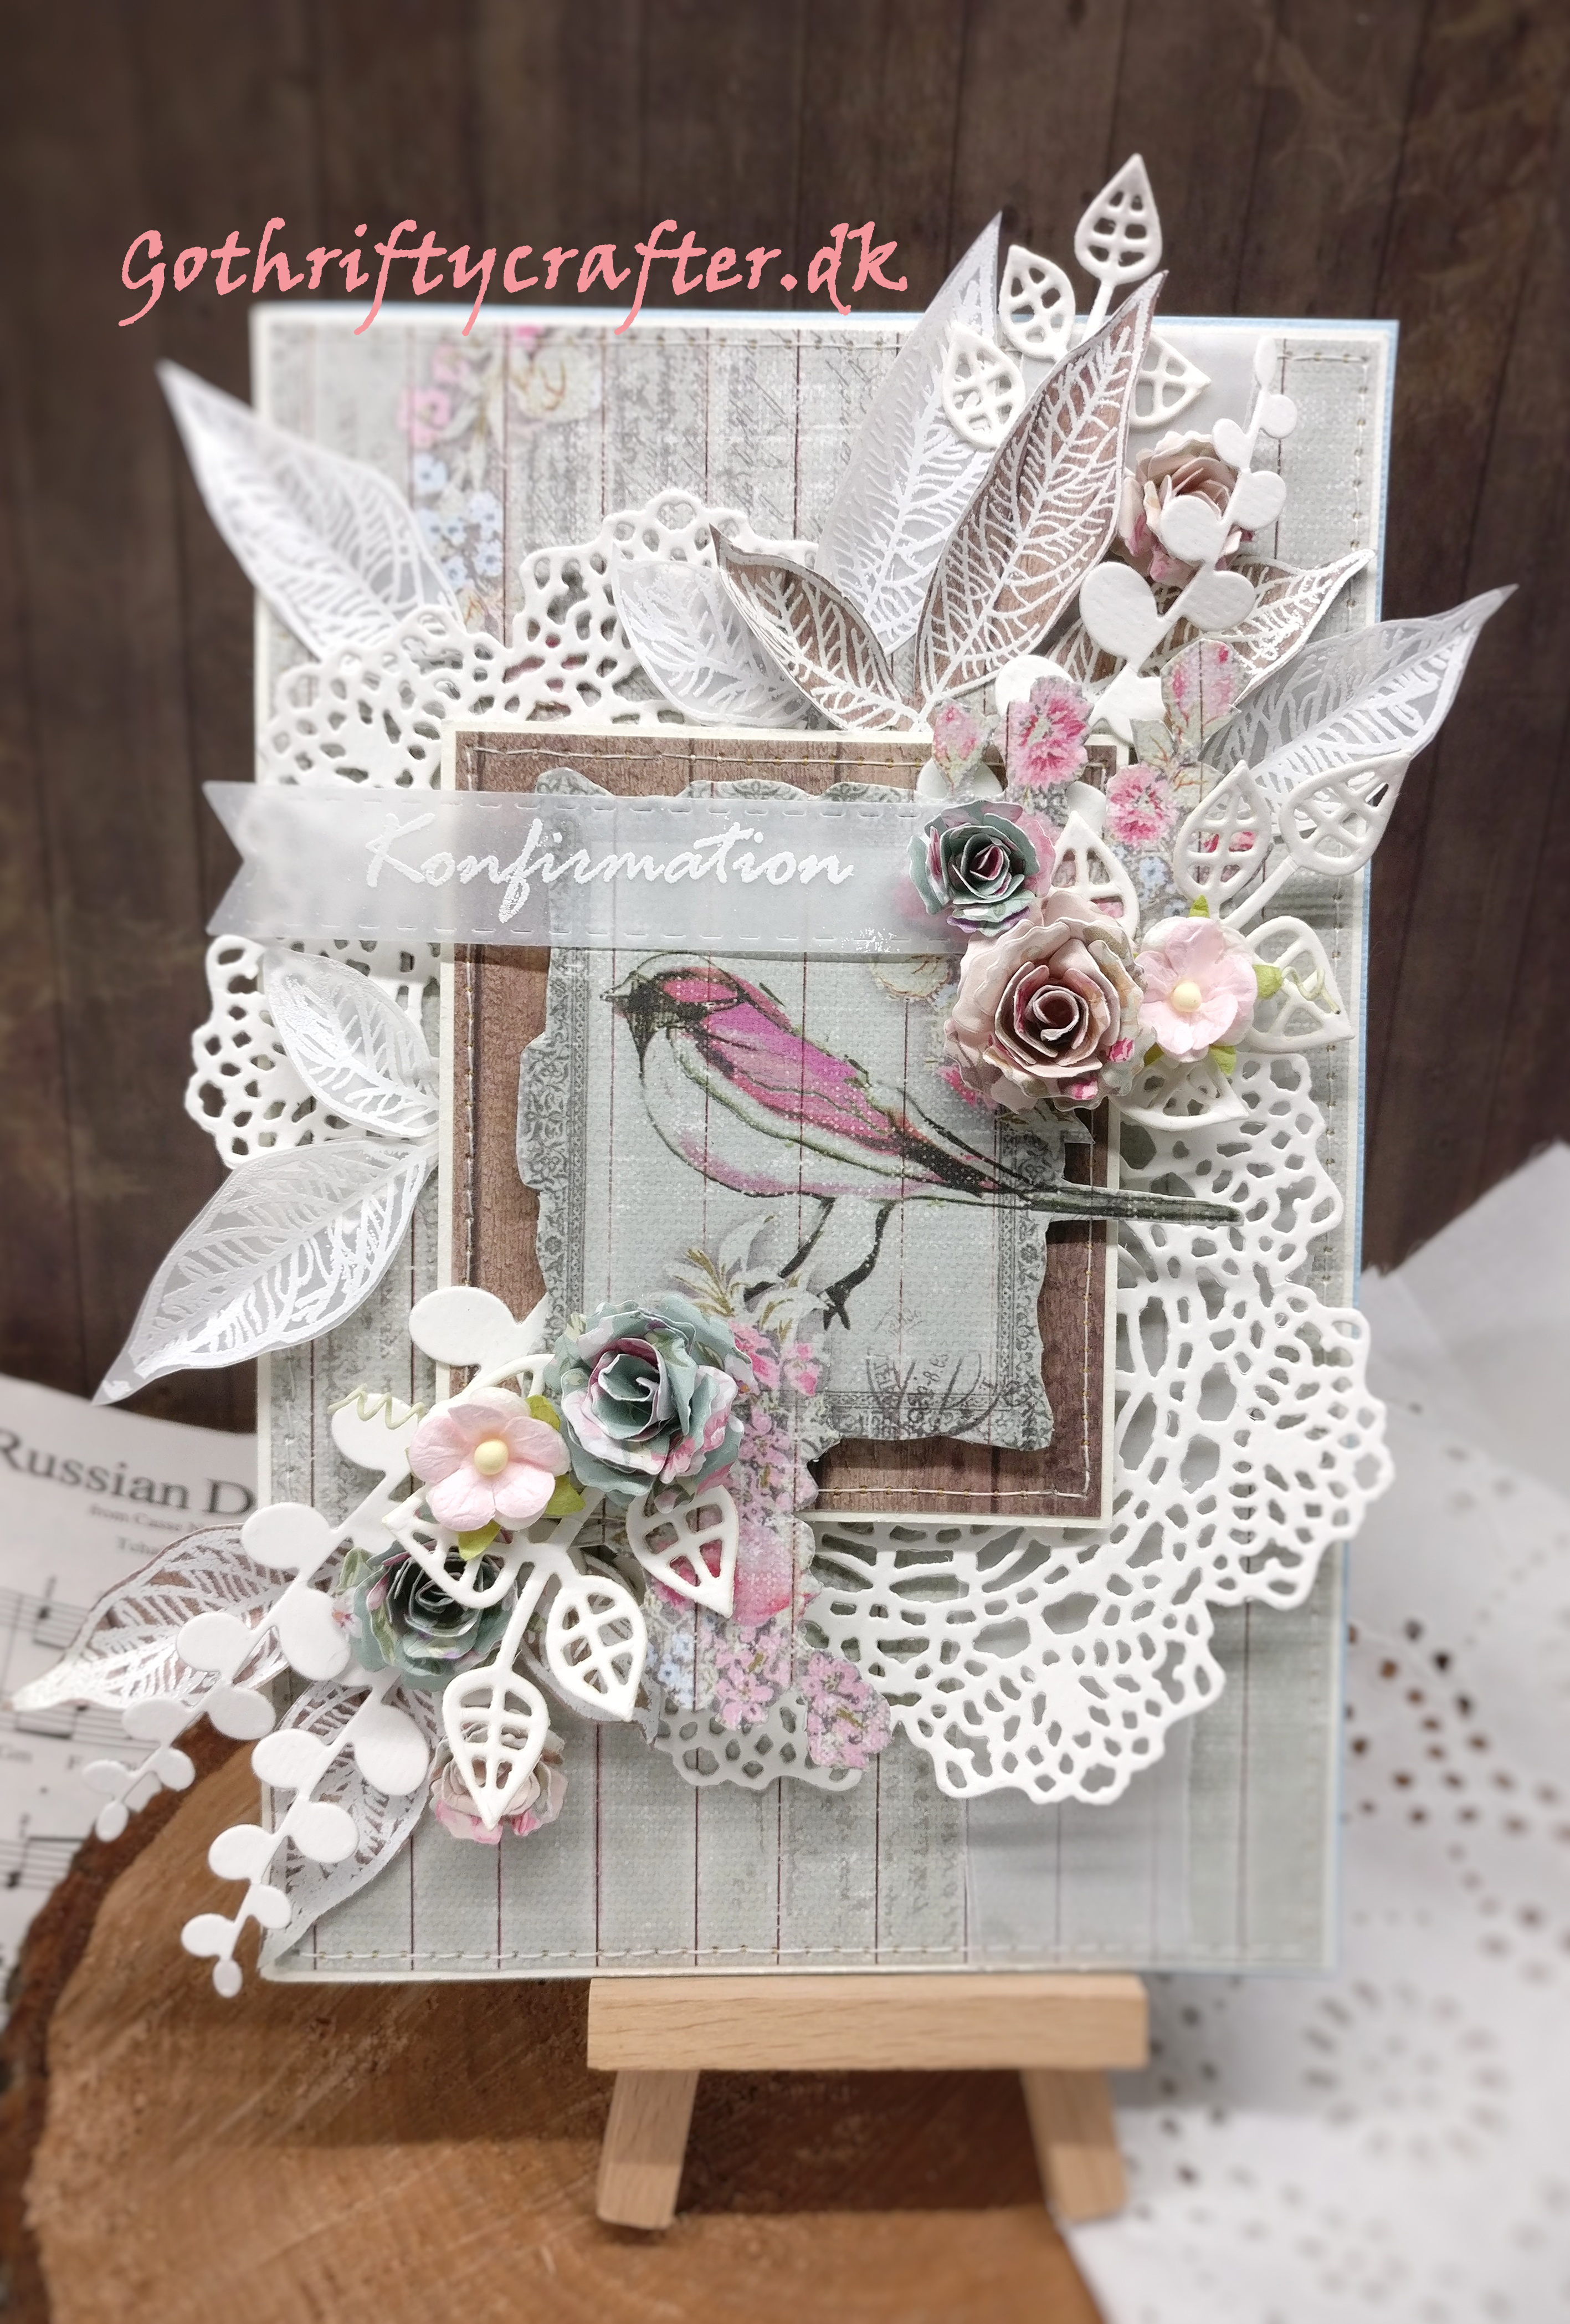 Gothriftycrafter confirmation congratulation card with embossed leaves doily roses bird whitejpg